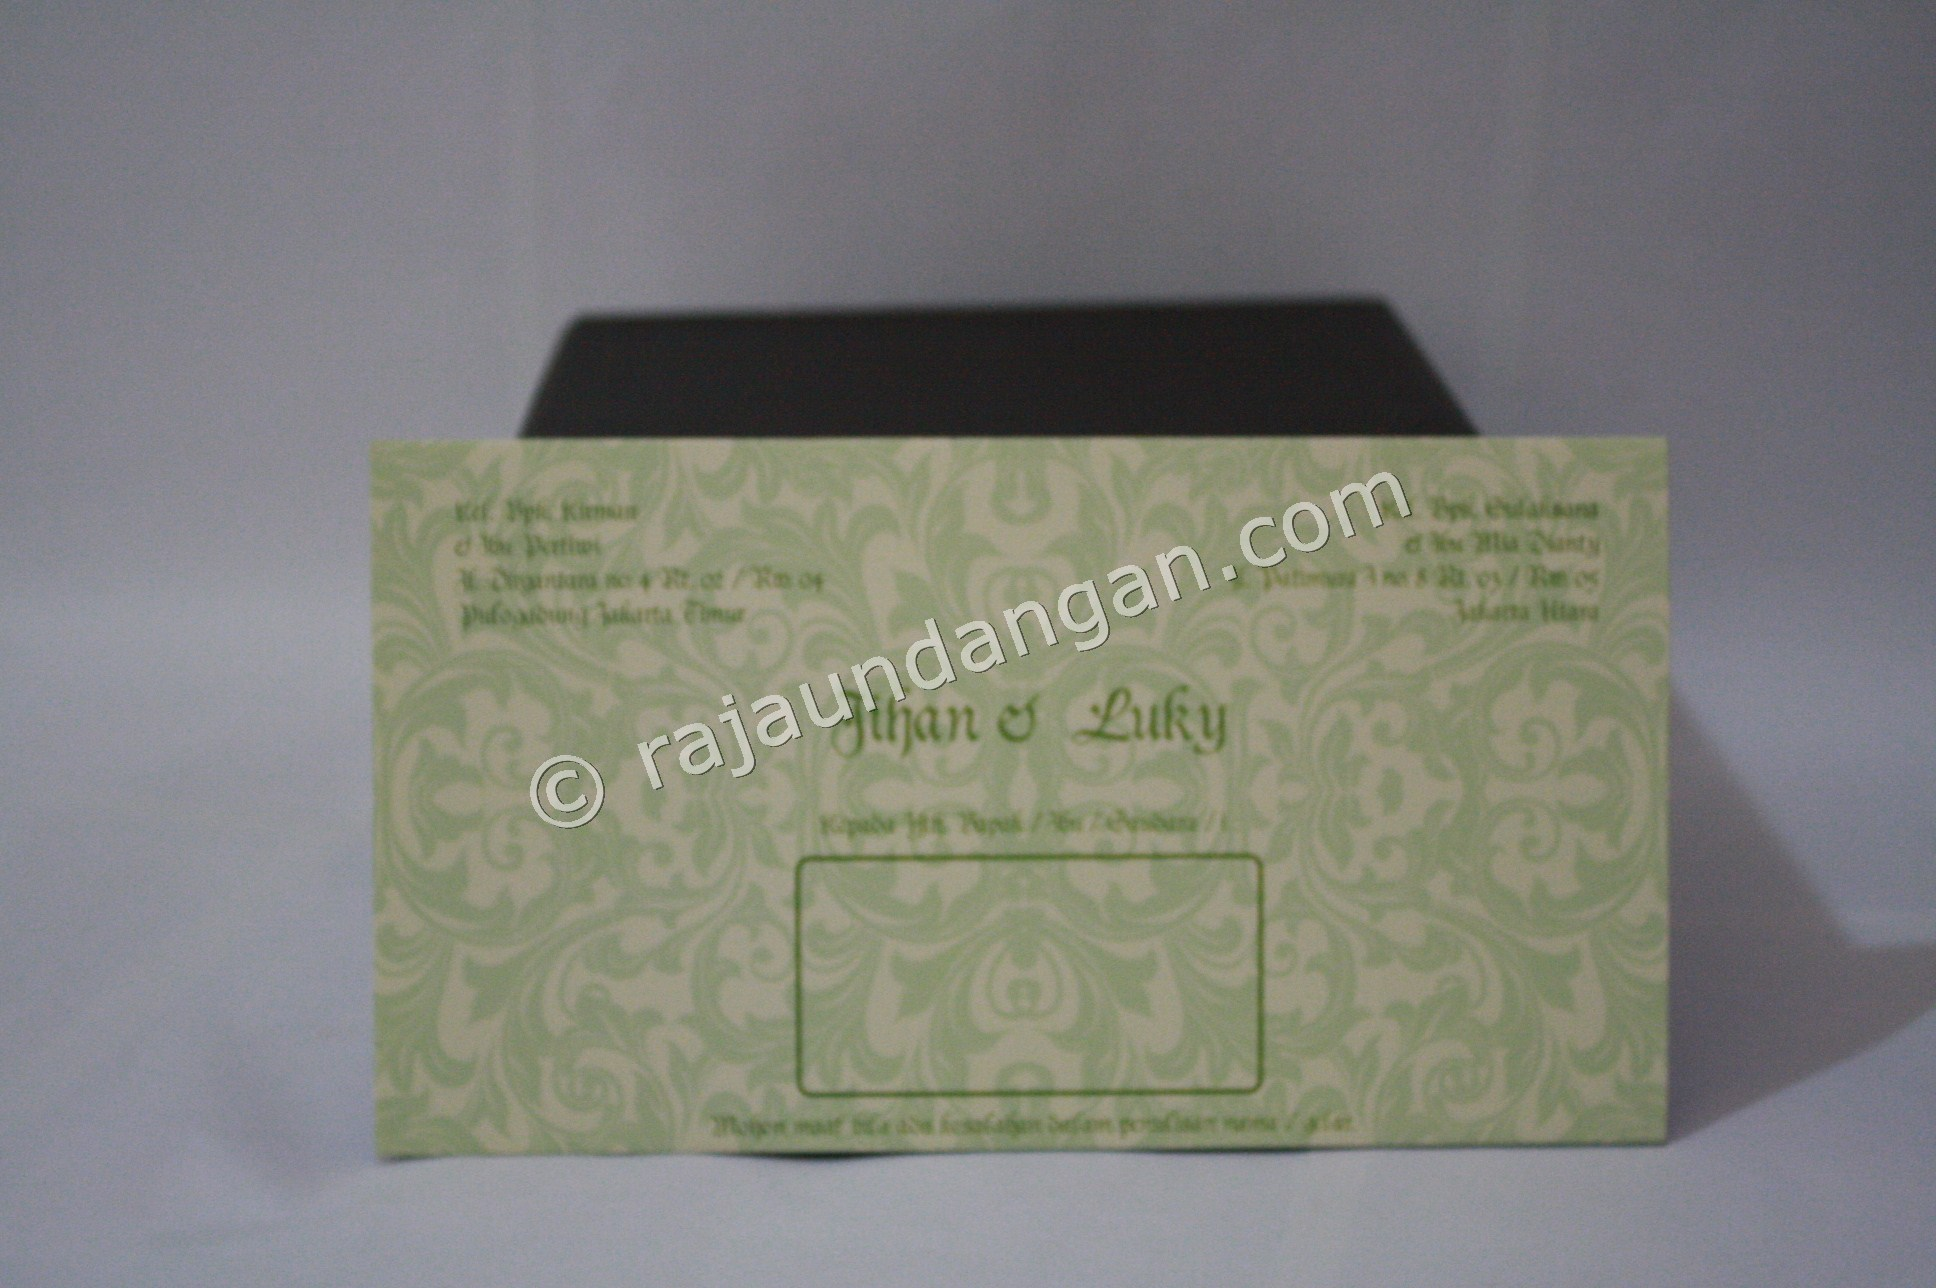 Undangan Pernikahan Softcover Jihan dan Luky 2 - Desain Wedding Invitations Unik dan Simple